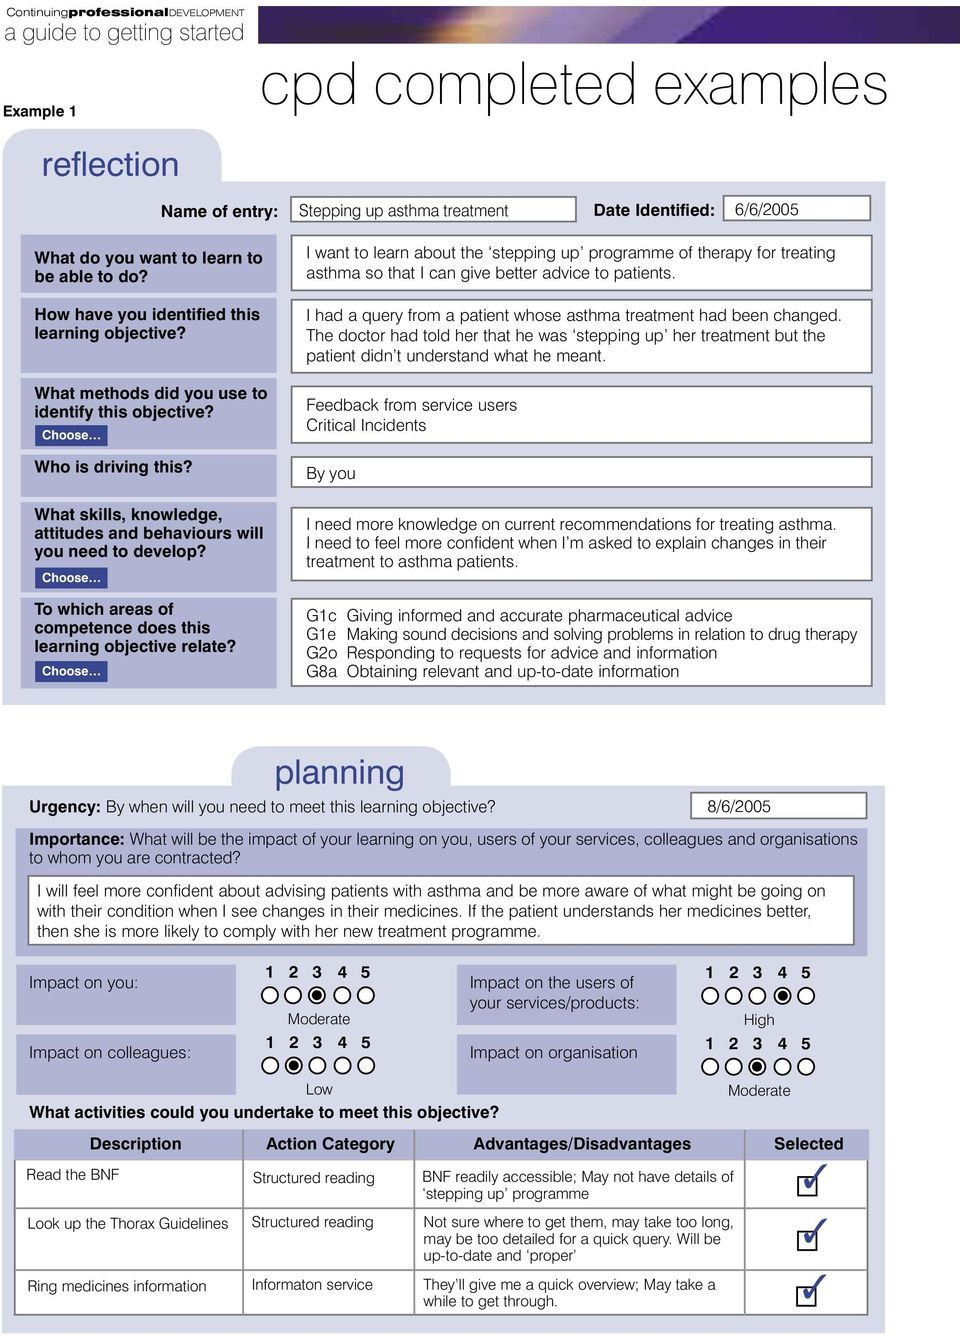 Cute Cpd Template Contemporary - Example Resume Templates Collection ...